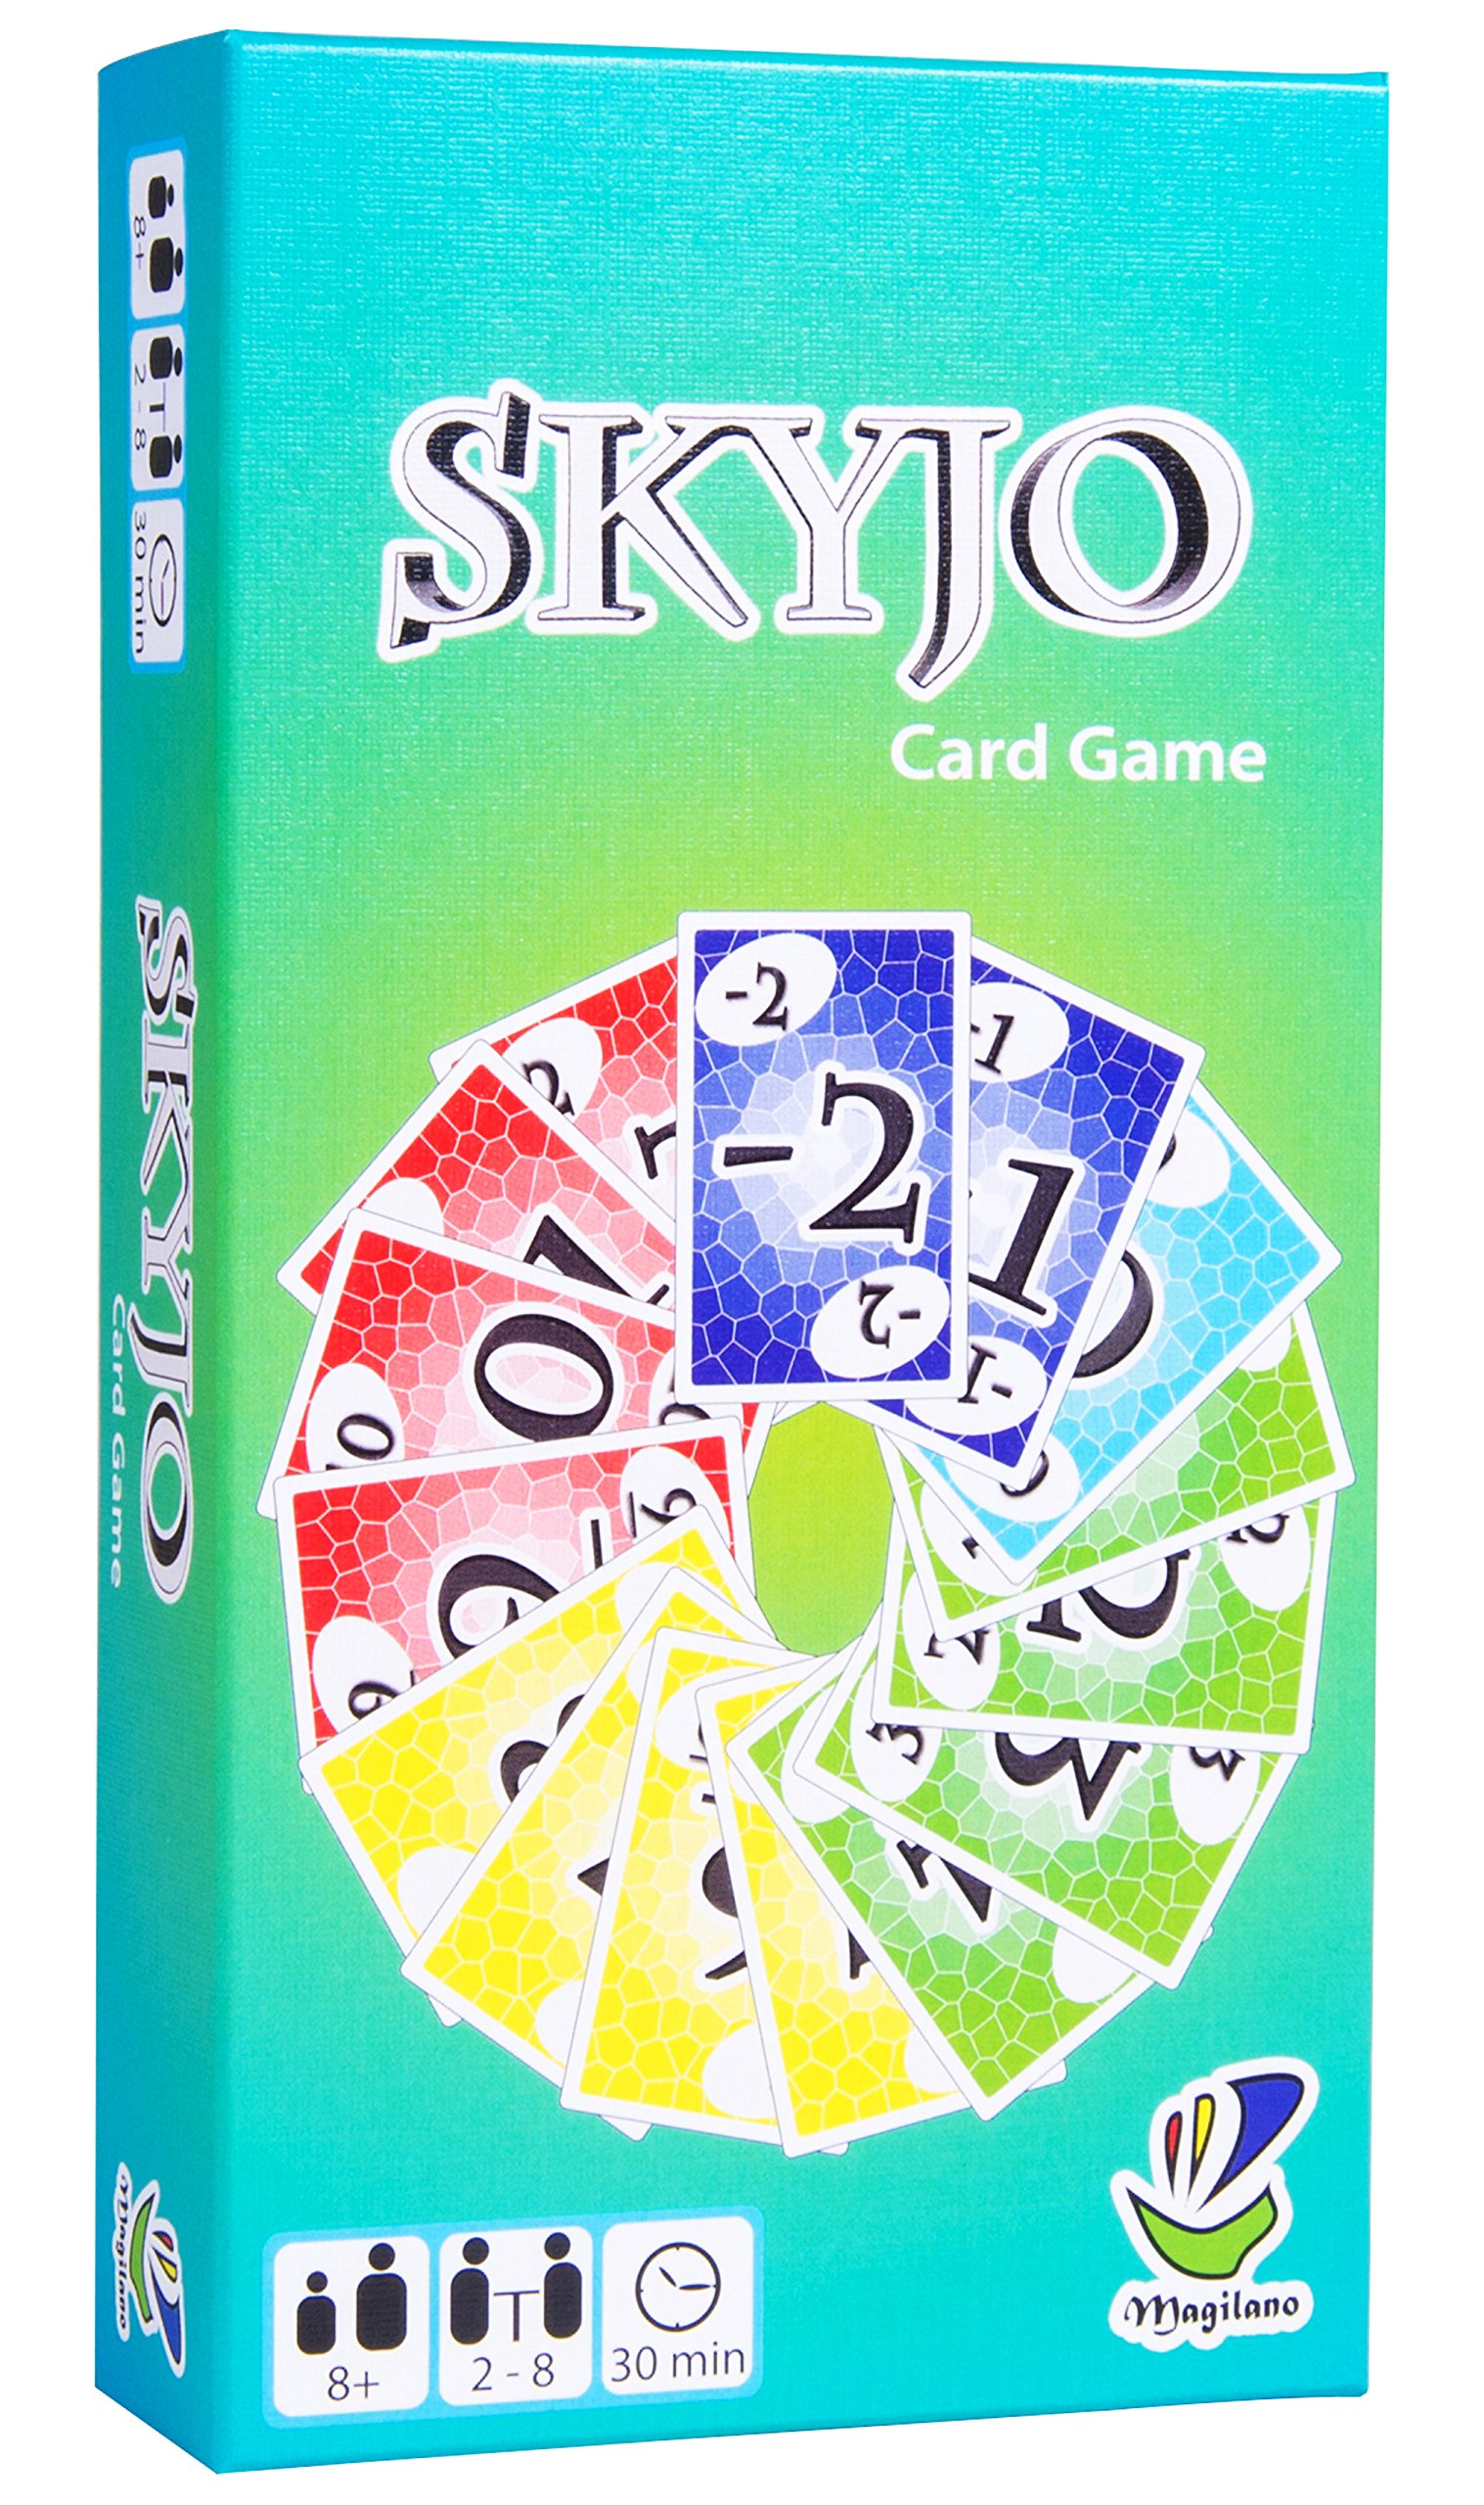 Magilano SKYJO The Ultimate Card Game for Kids and Adults. The Ideal Board Game for Funny, Entertaining and exciting Playing Hours with Friends and Family.